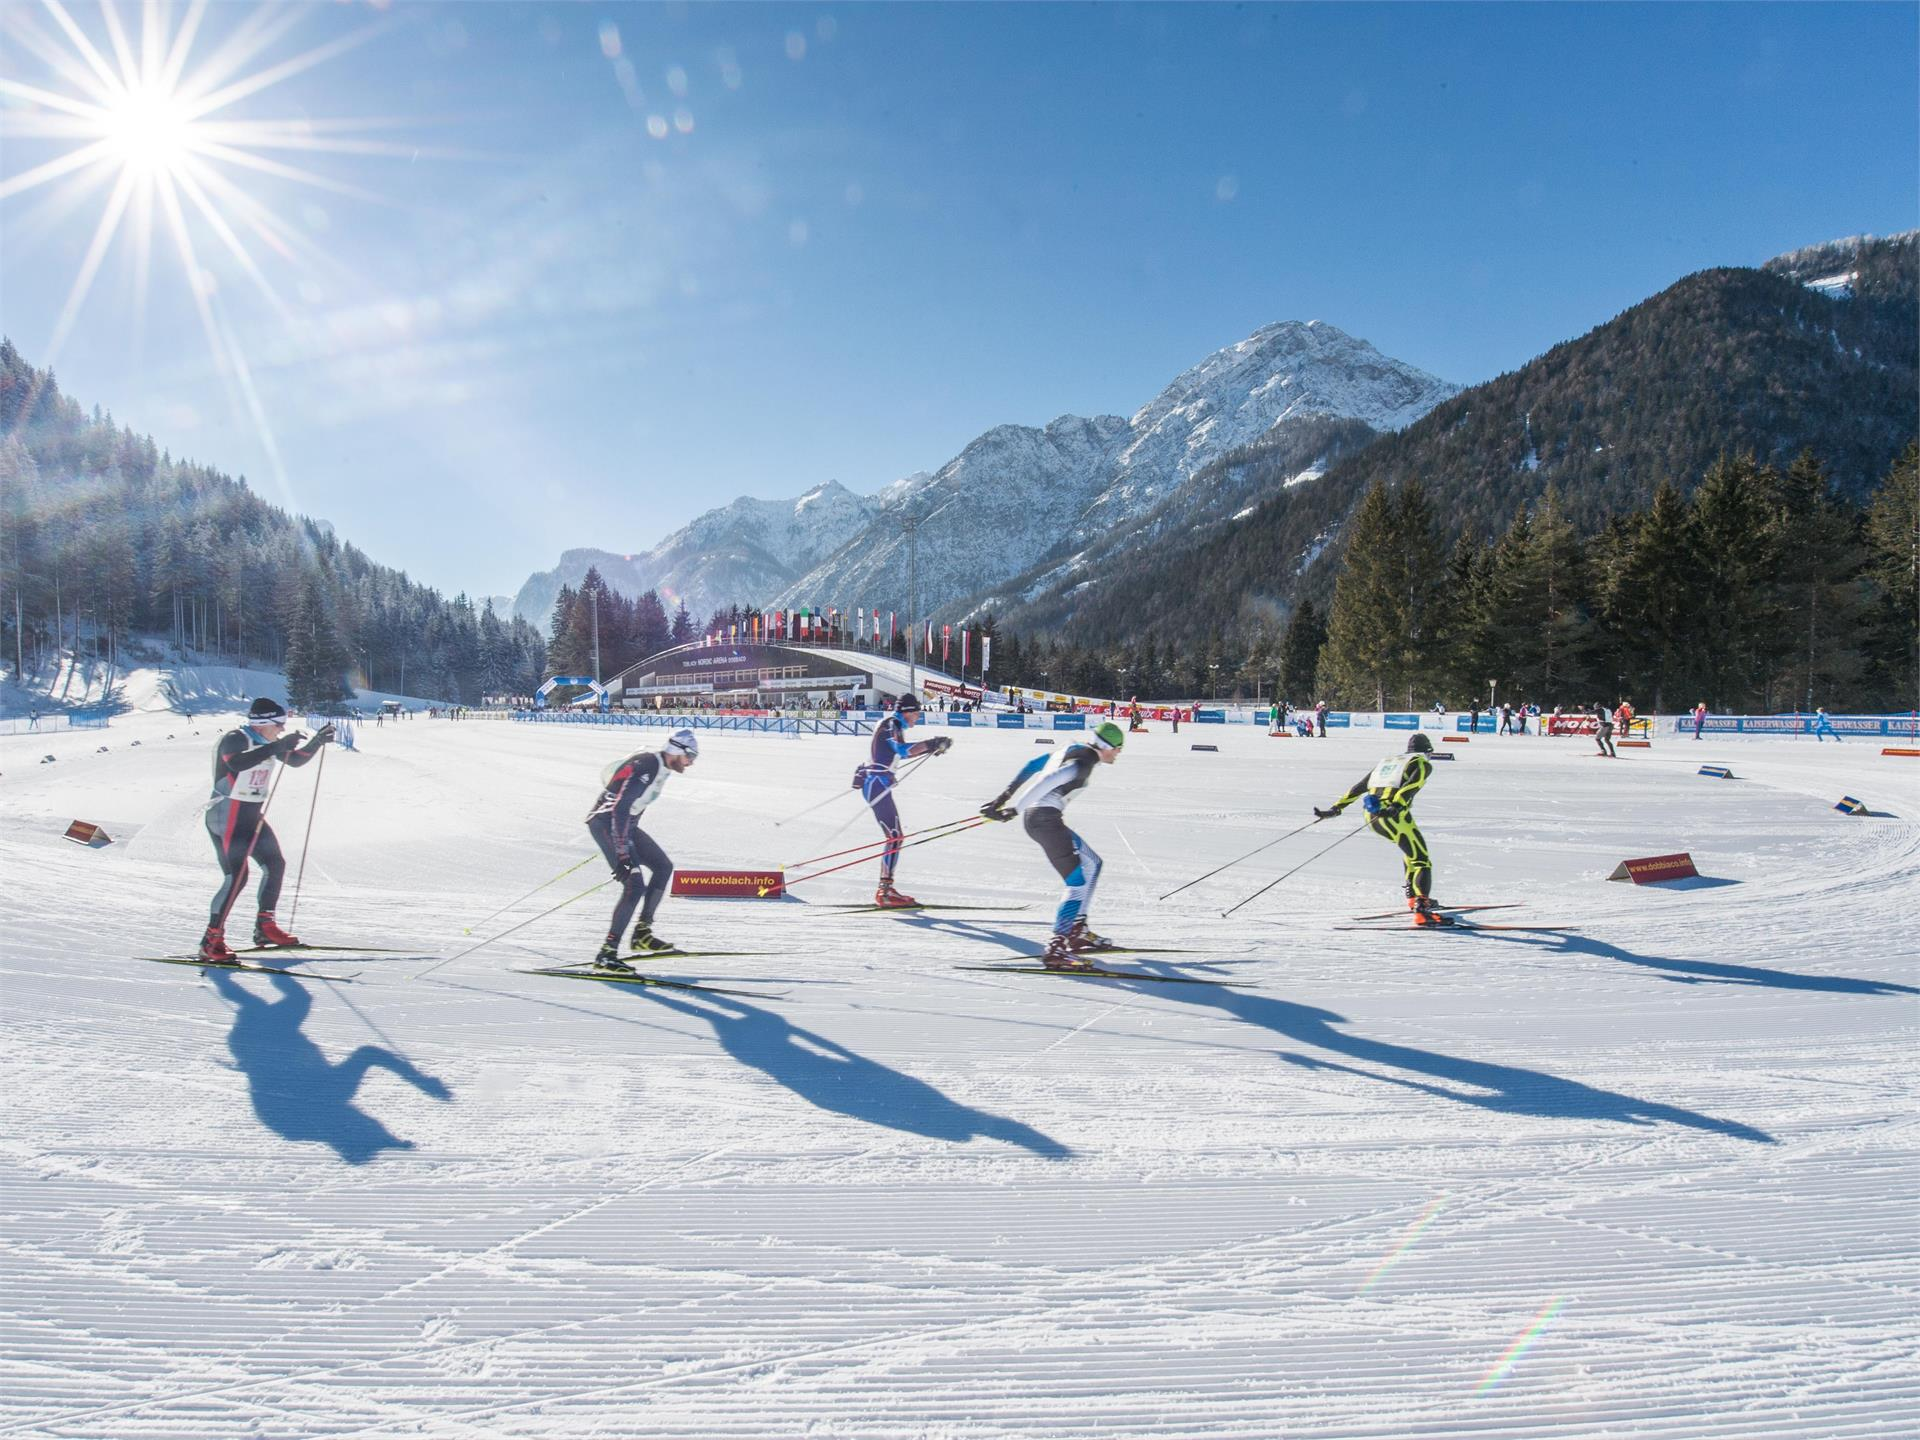 FIS CROSS COUNTRY WORLD CUP presented by VIESSMANN